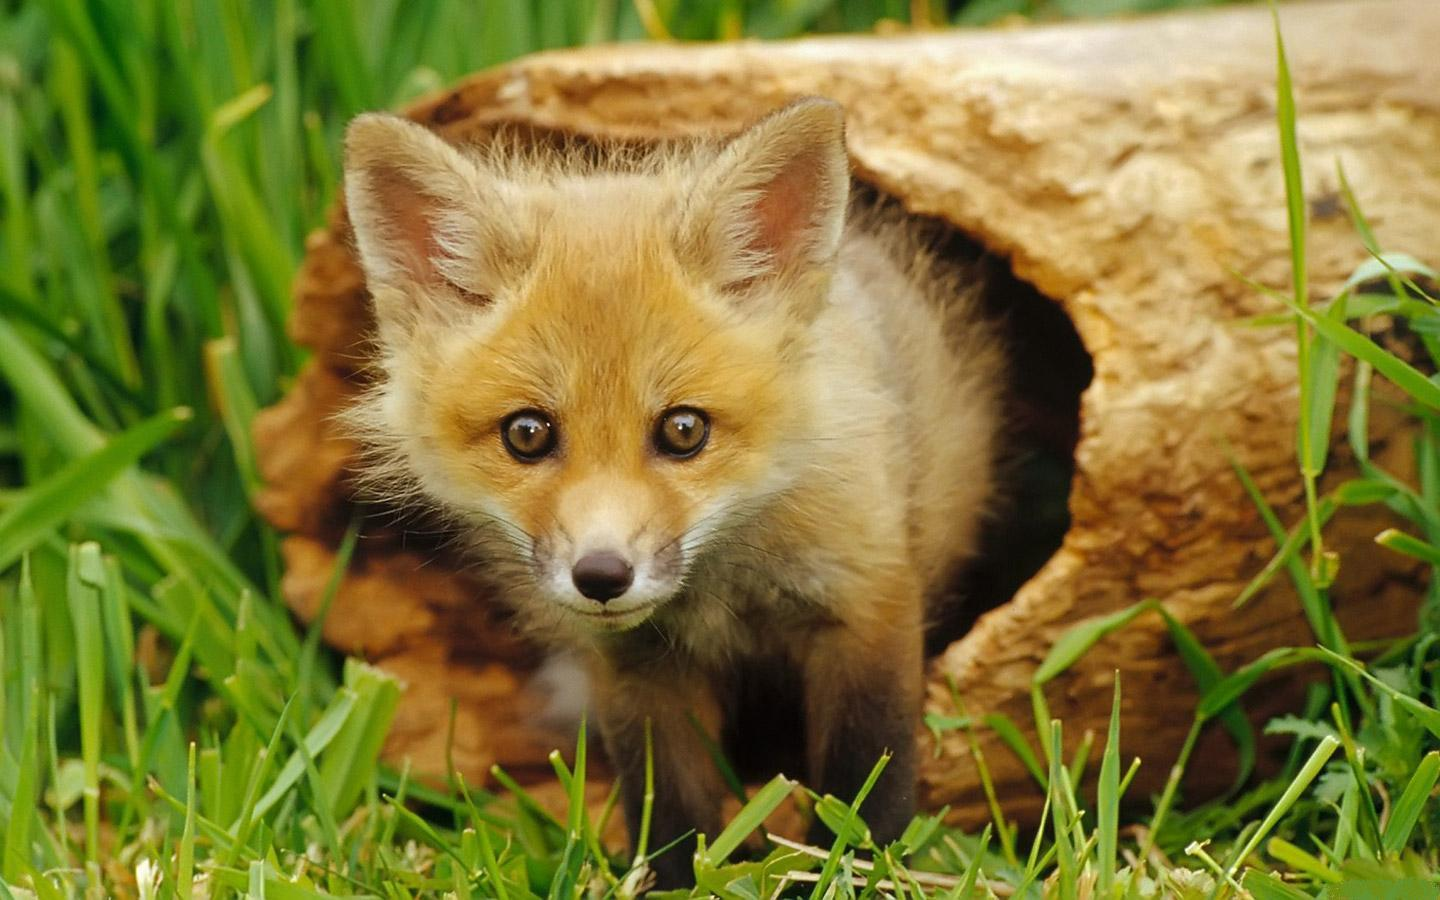 46746 download wallpaper Animals, Fox screensavers and pictures for free